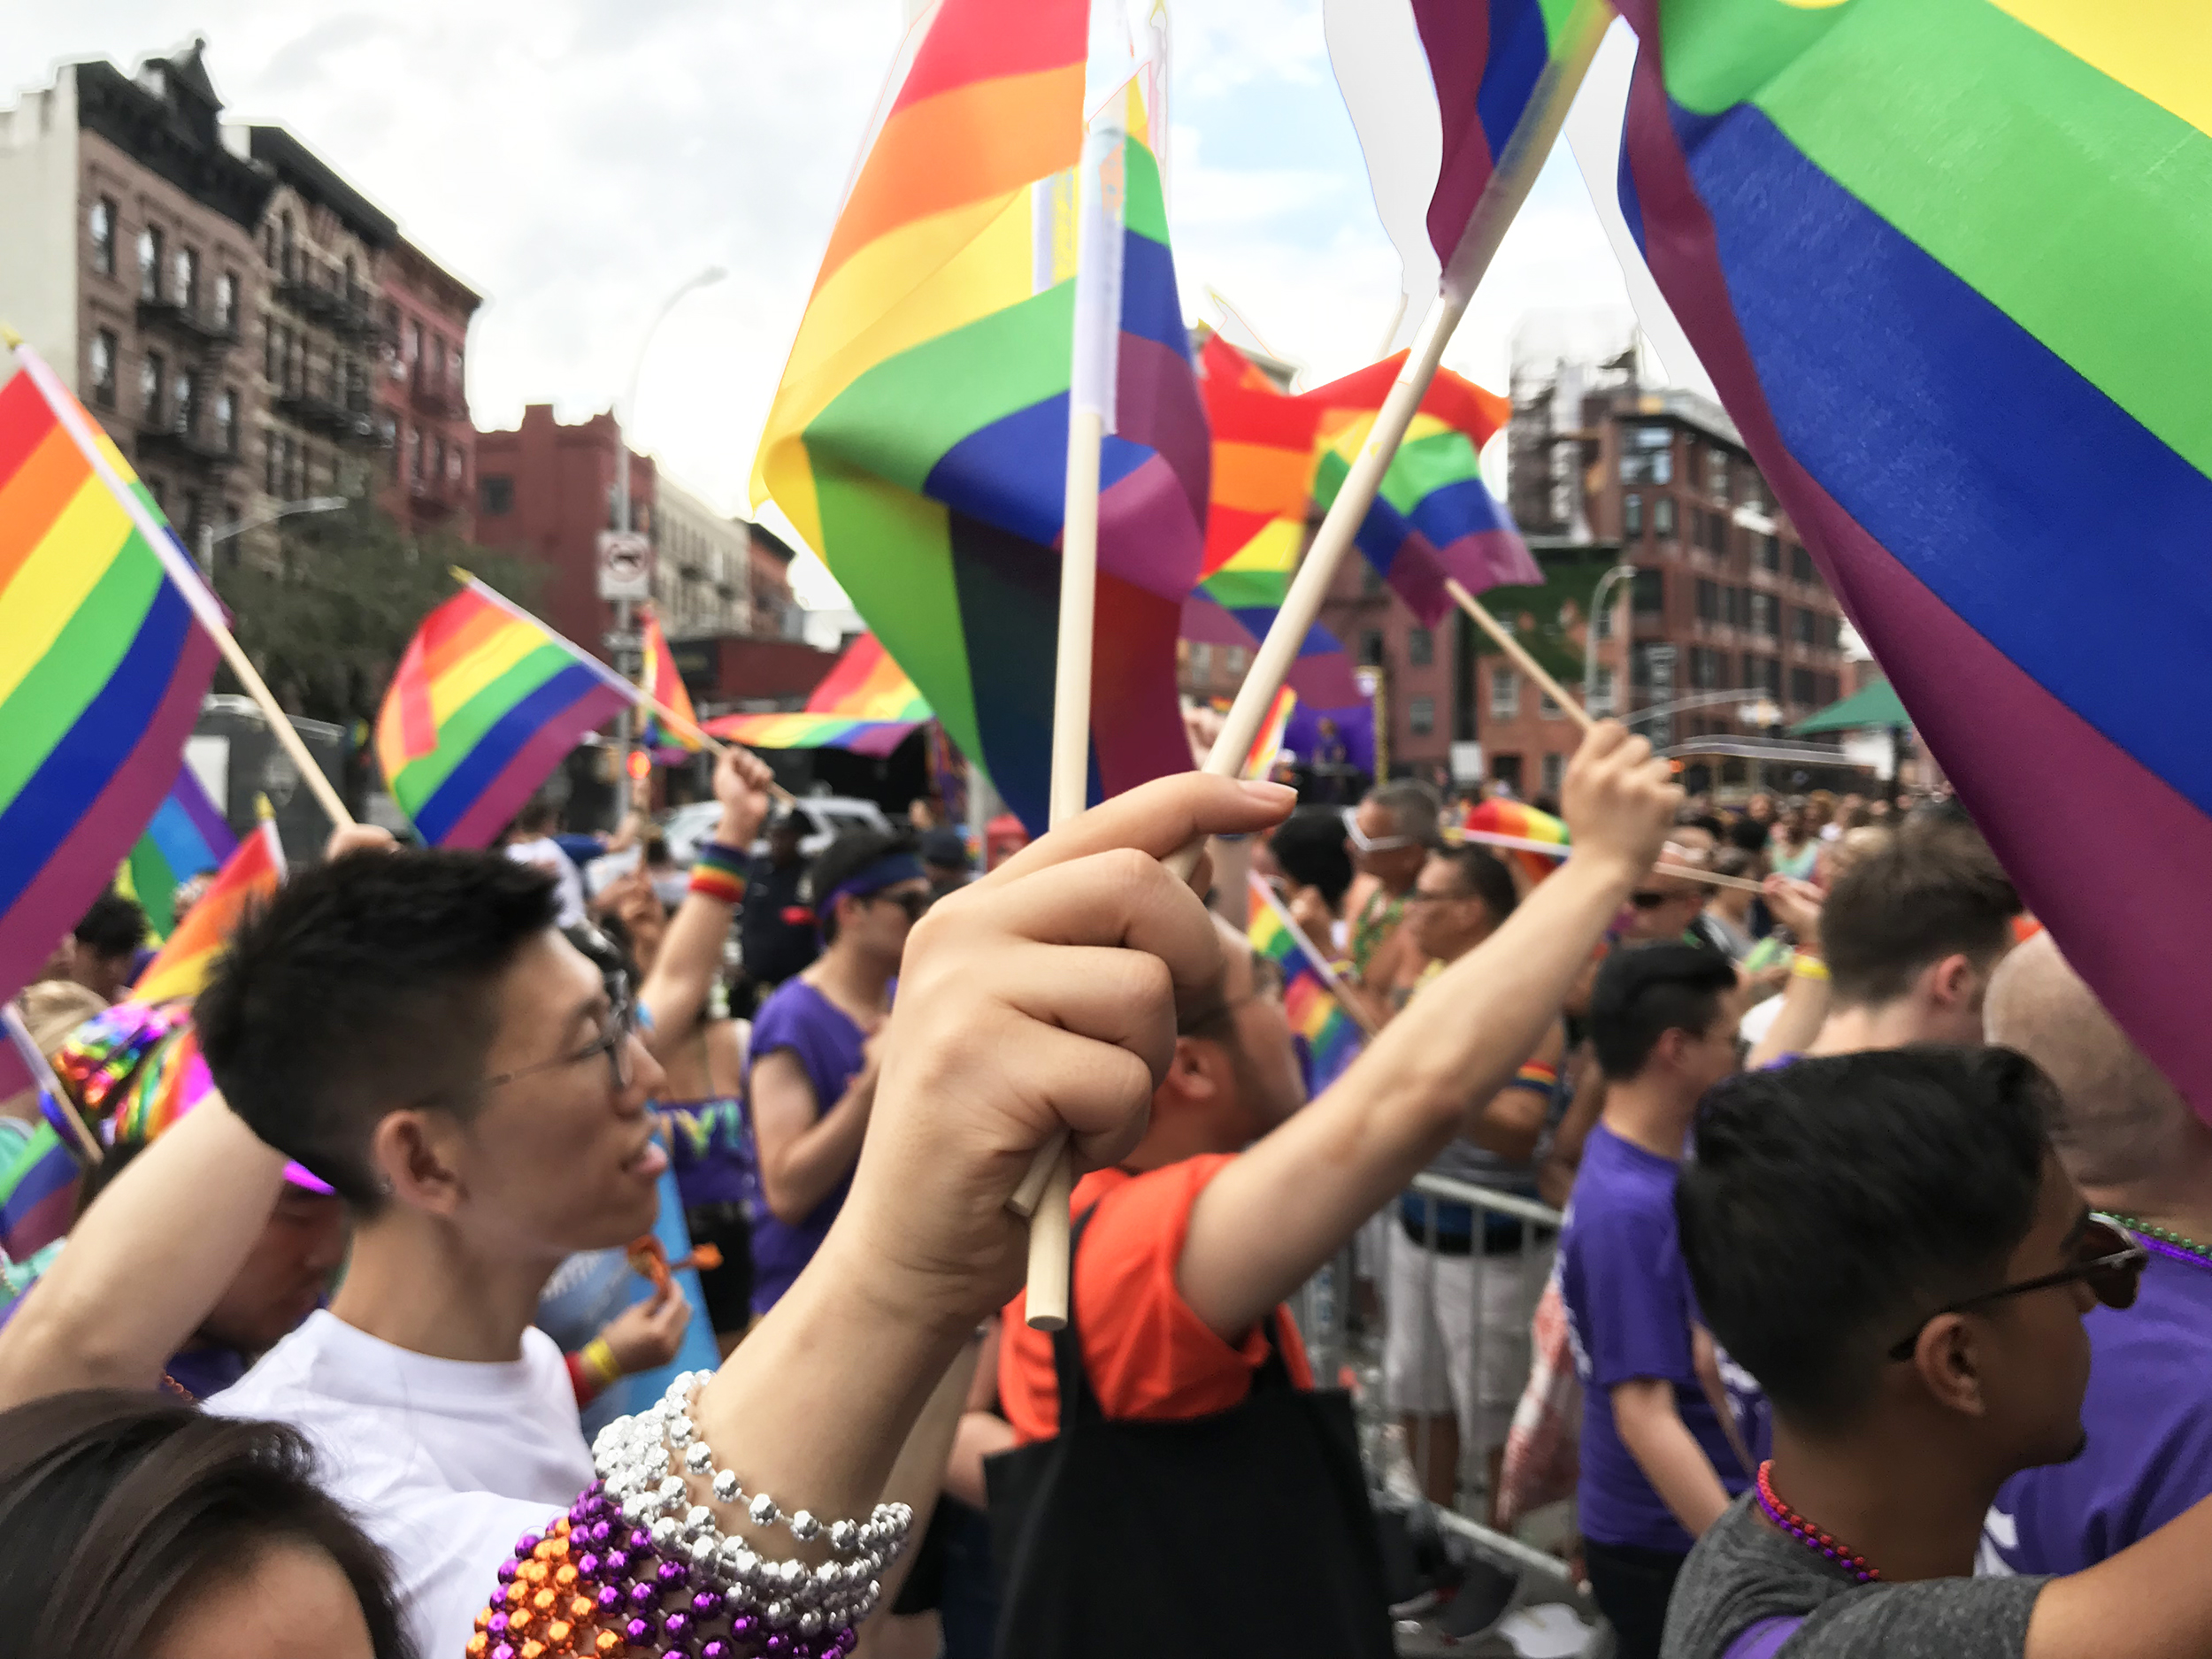 """In recent years, much of the LGBT+ community has taken to reclaiming the term """"queer."""" Due to the history and negative connotations surrounding the term, it should simply be abolished (courtesy of Creative Commons)."""